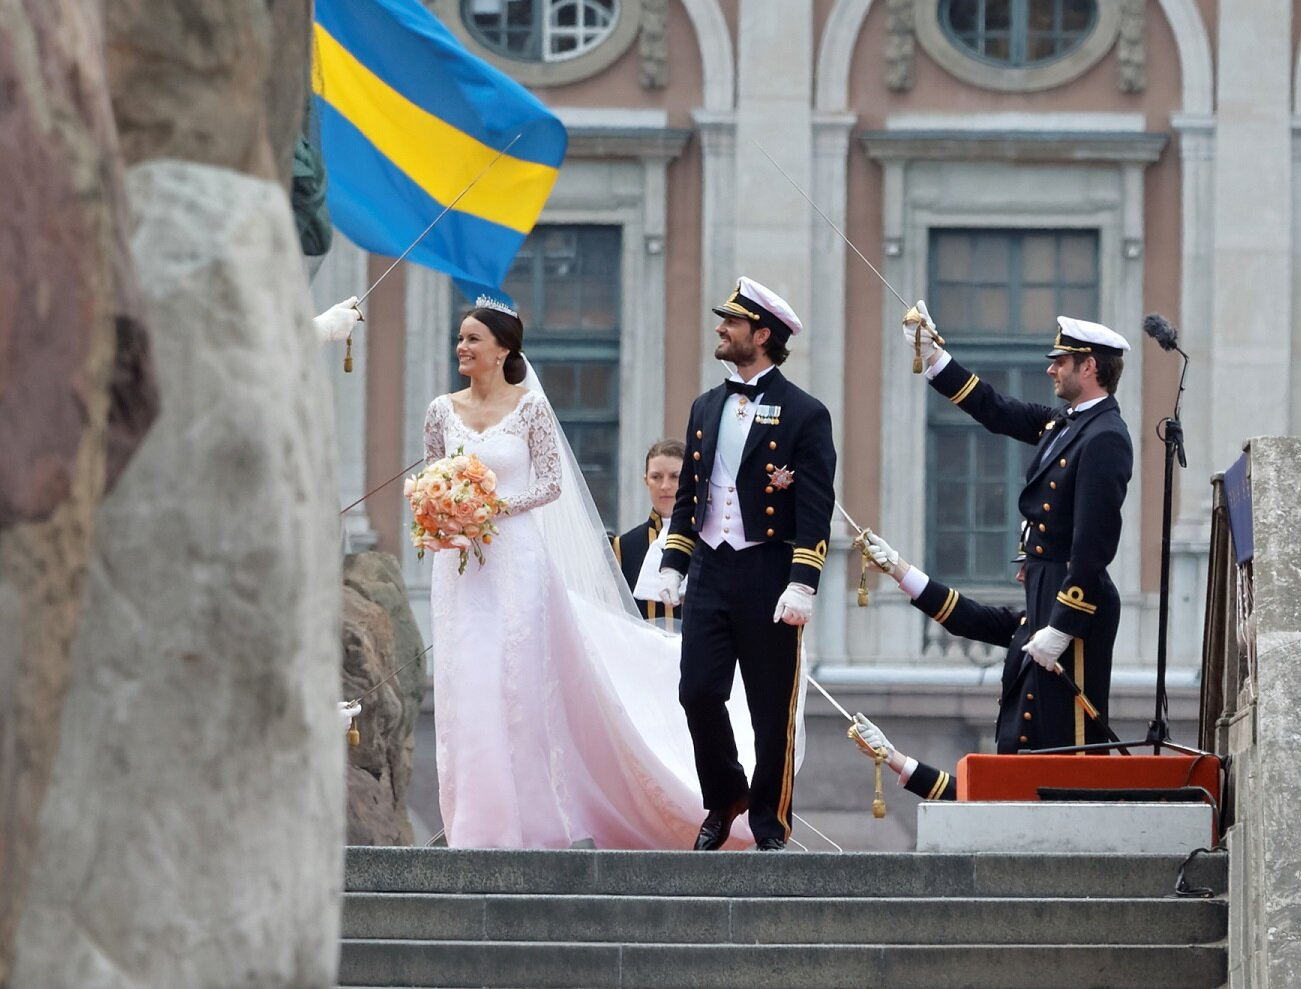 The wedding of Prince Carl Phillip and Princess Sofia. No, not that one.